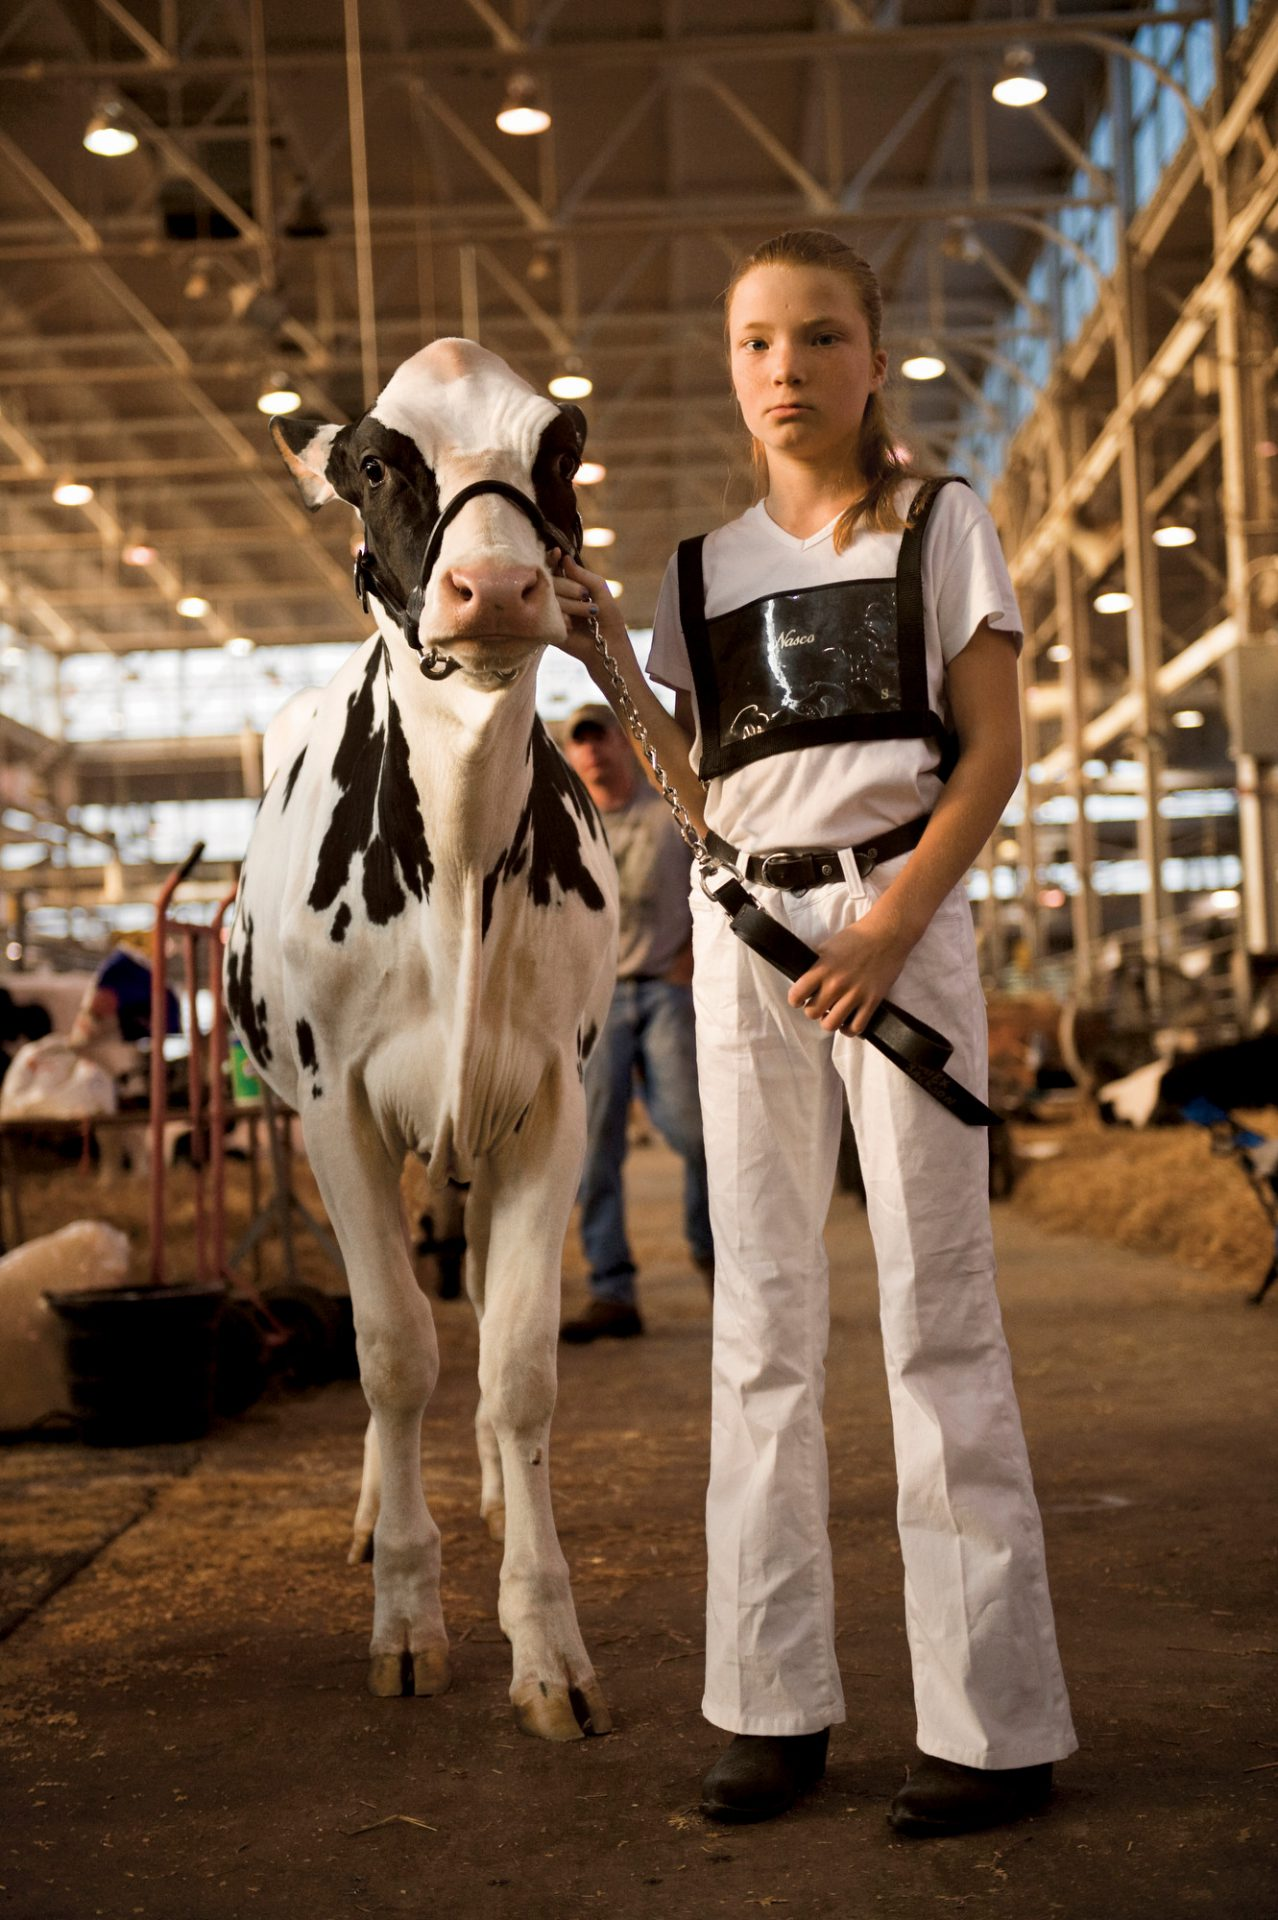 Photo: A teenager and her calf took top honors at the Indiana State Fair.